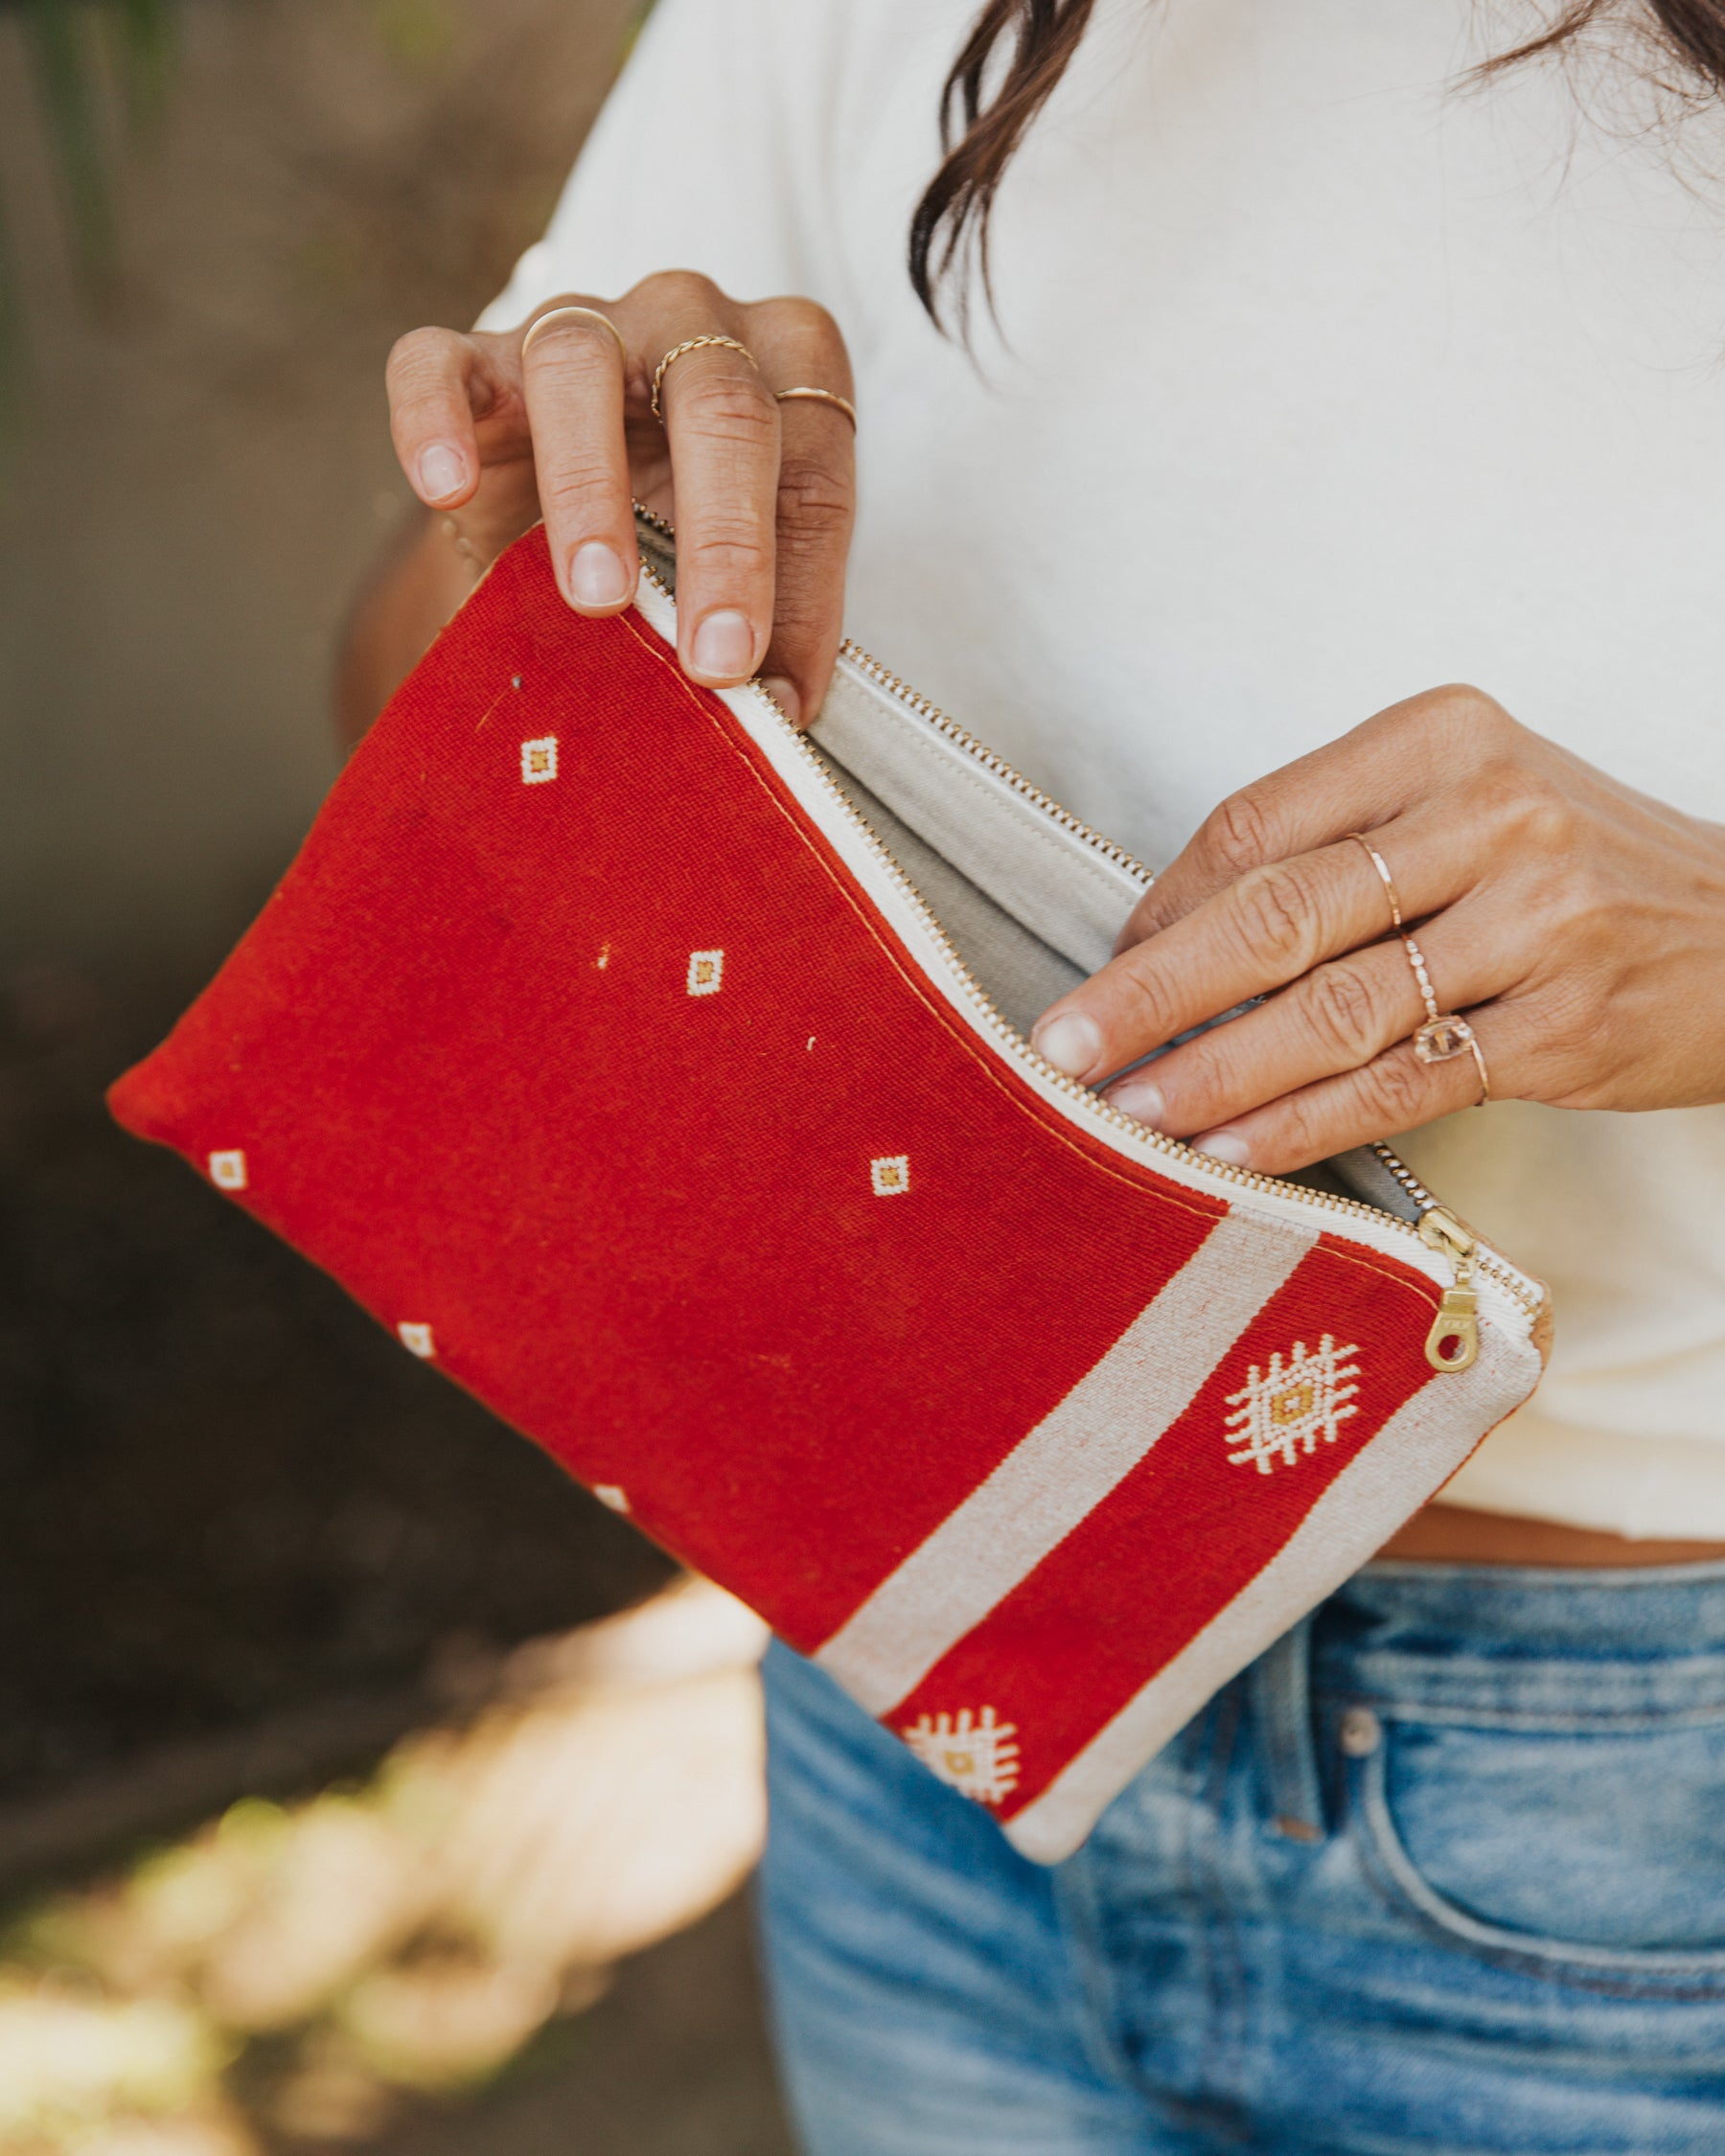 This handmade zippered pouch features hand-woven, naturally-dyed and fair trade textiles from a cooperative in Chiapas, Mexico. It is sewn by a resettled refugee paid above a living wage in San Diego, California.